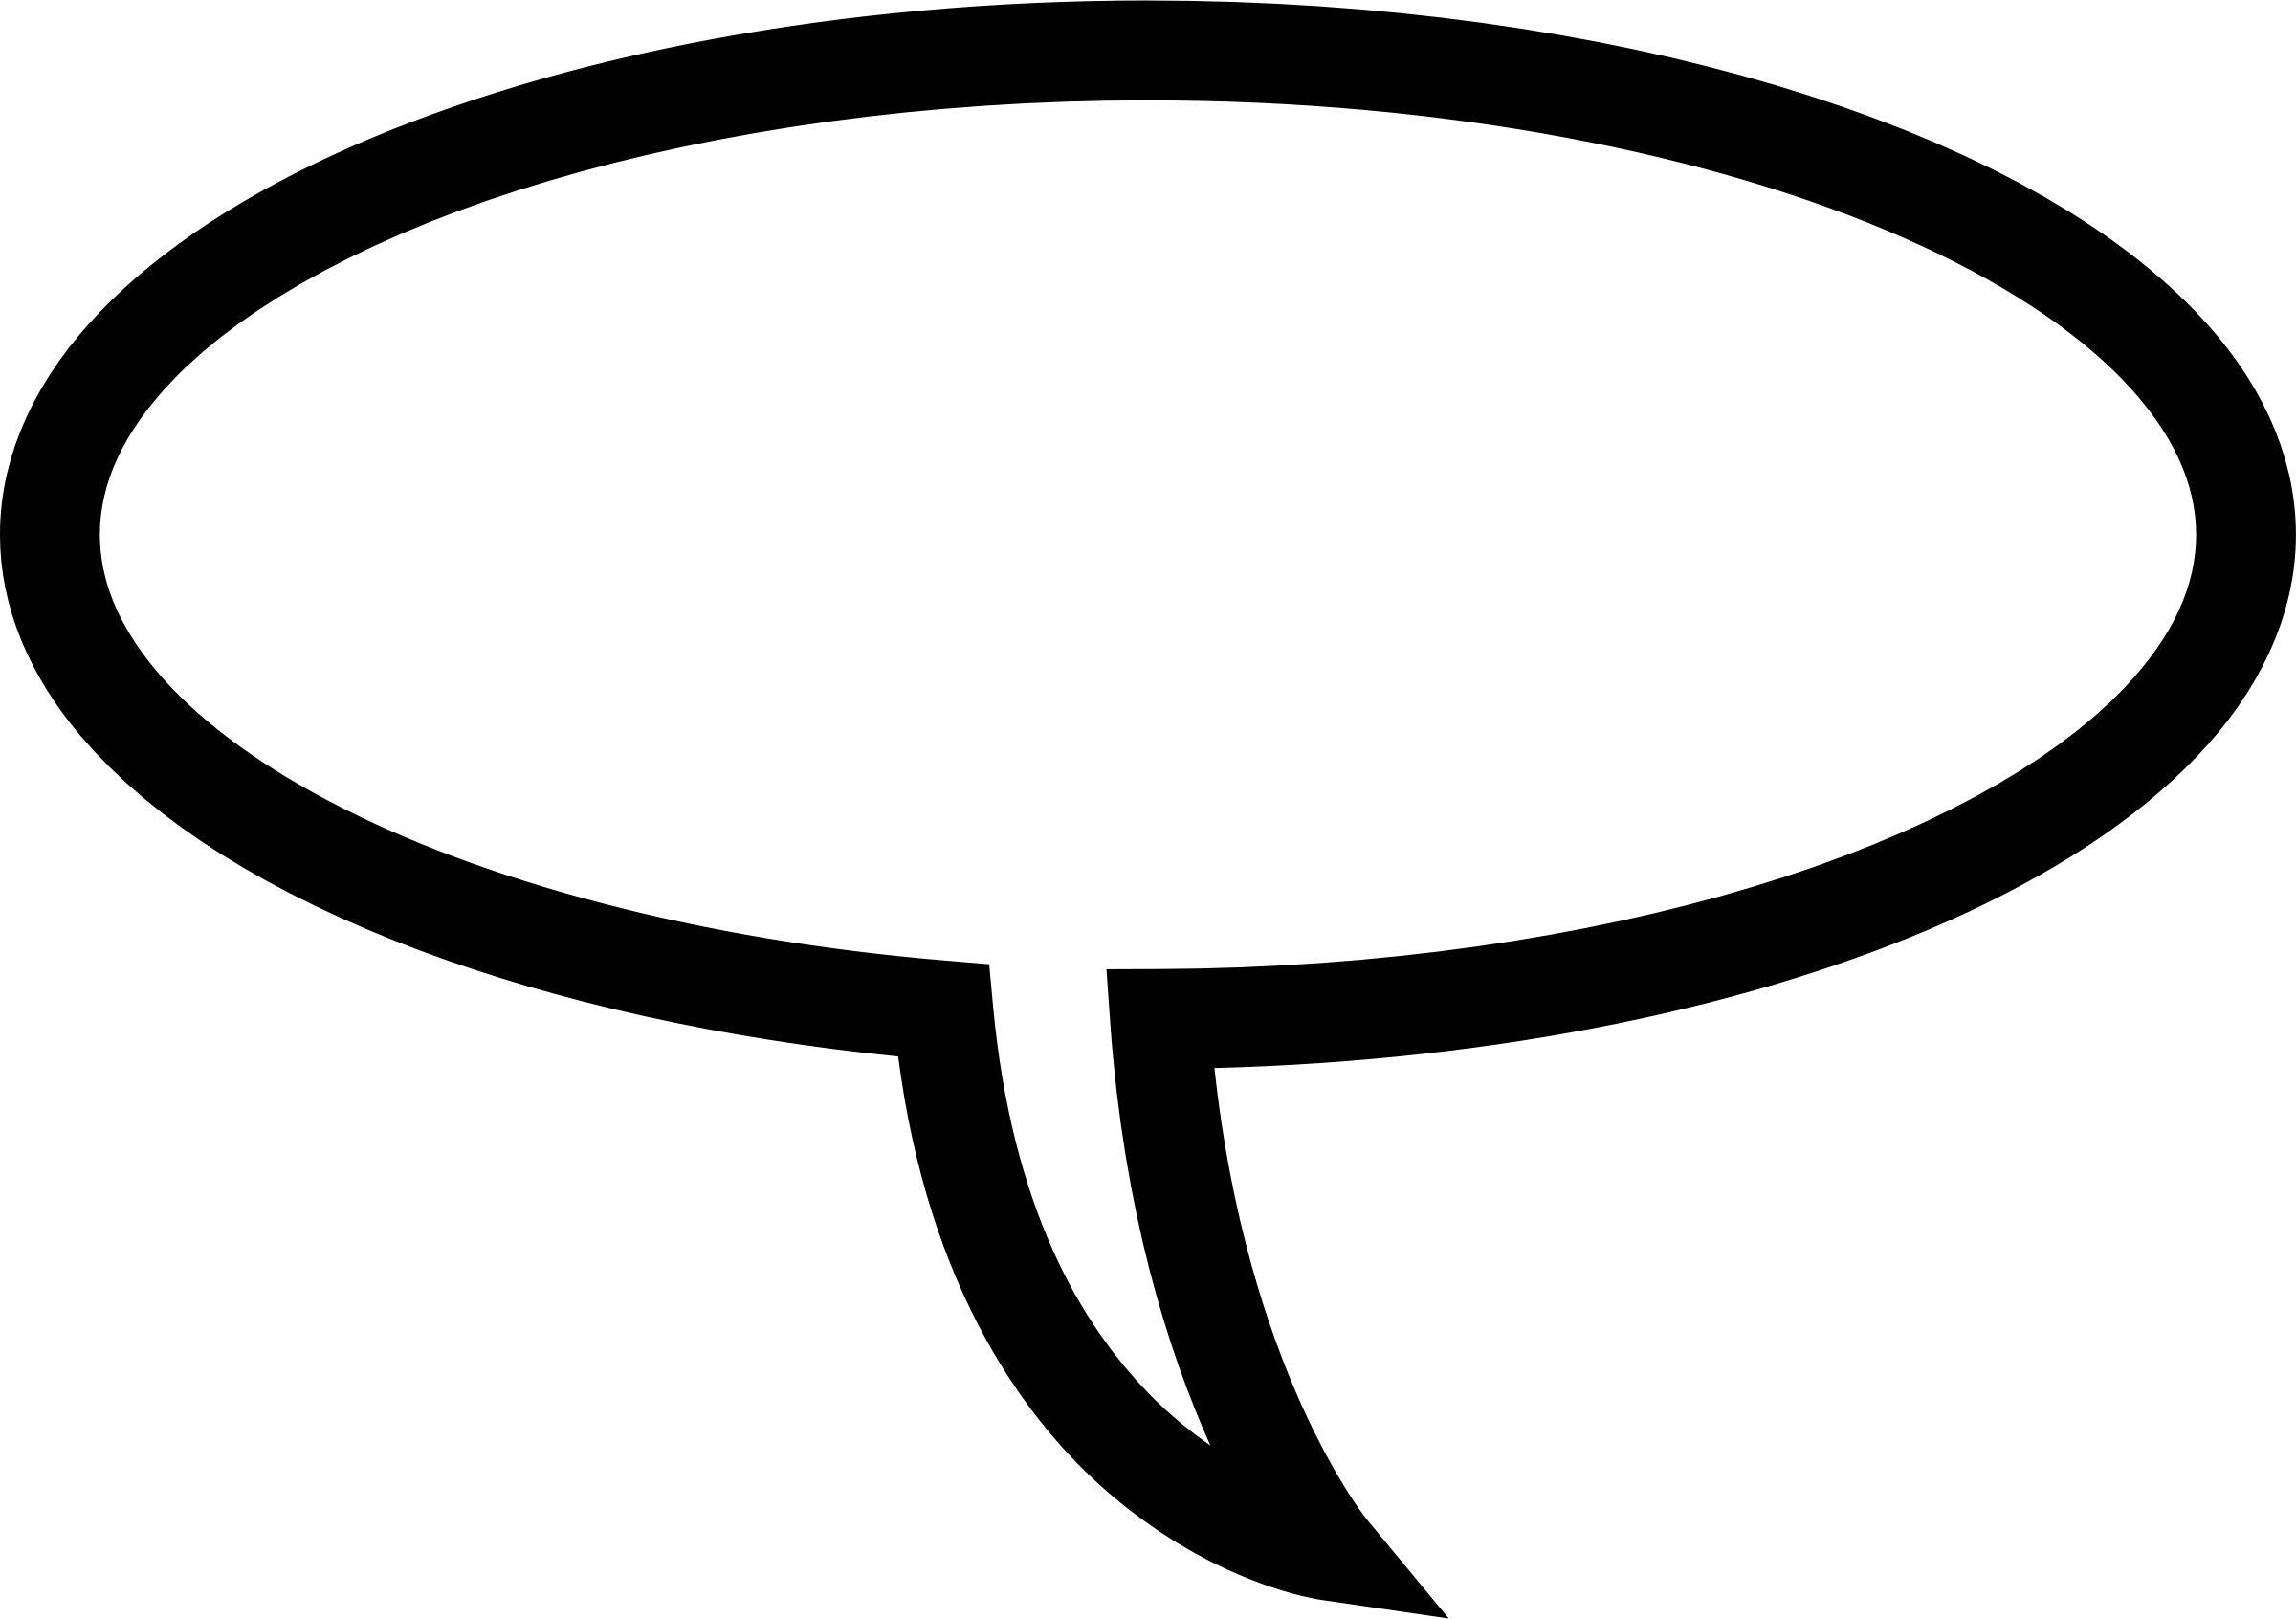 Conversation clipart speech bubble. Talk bubbles group